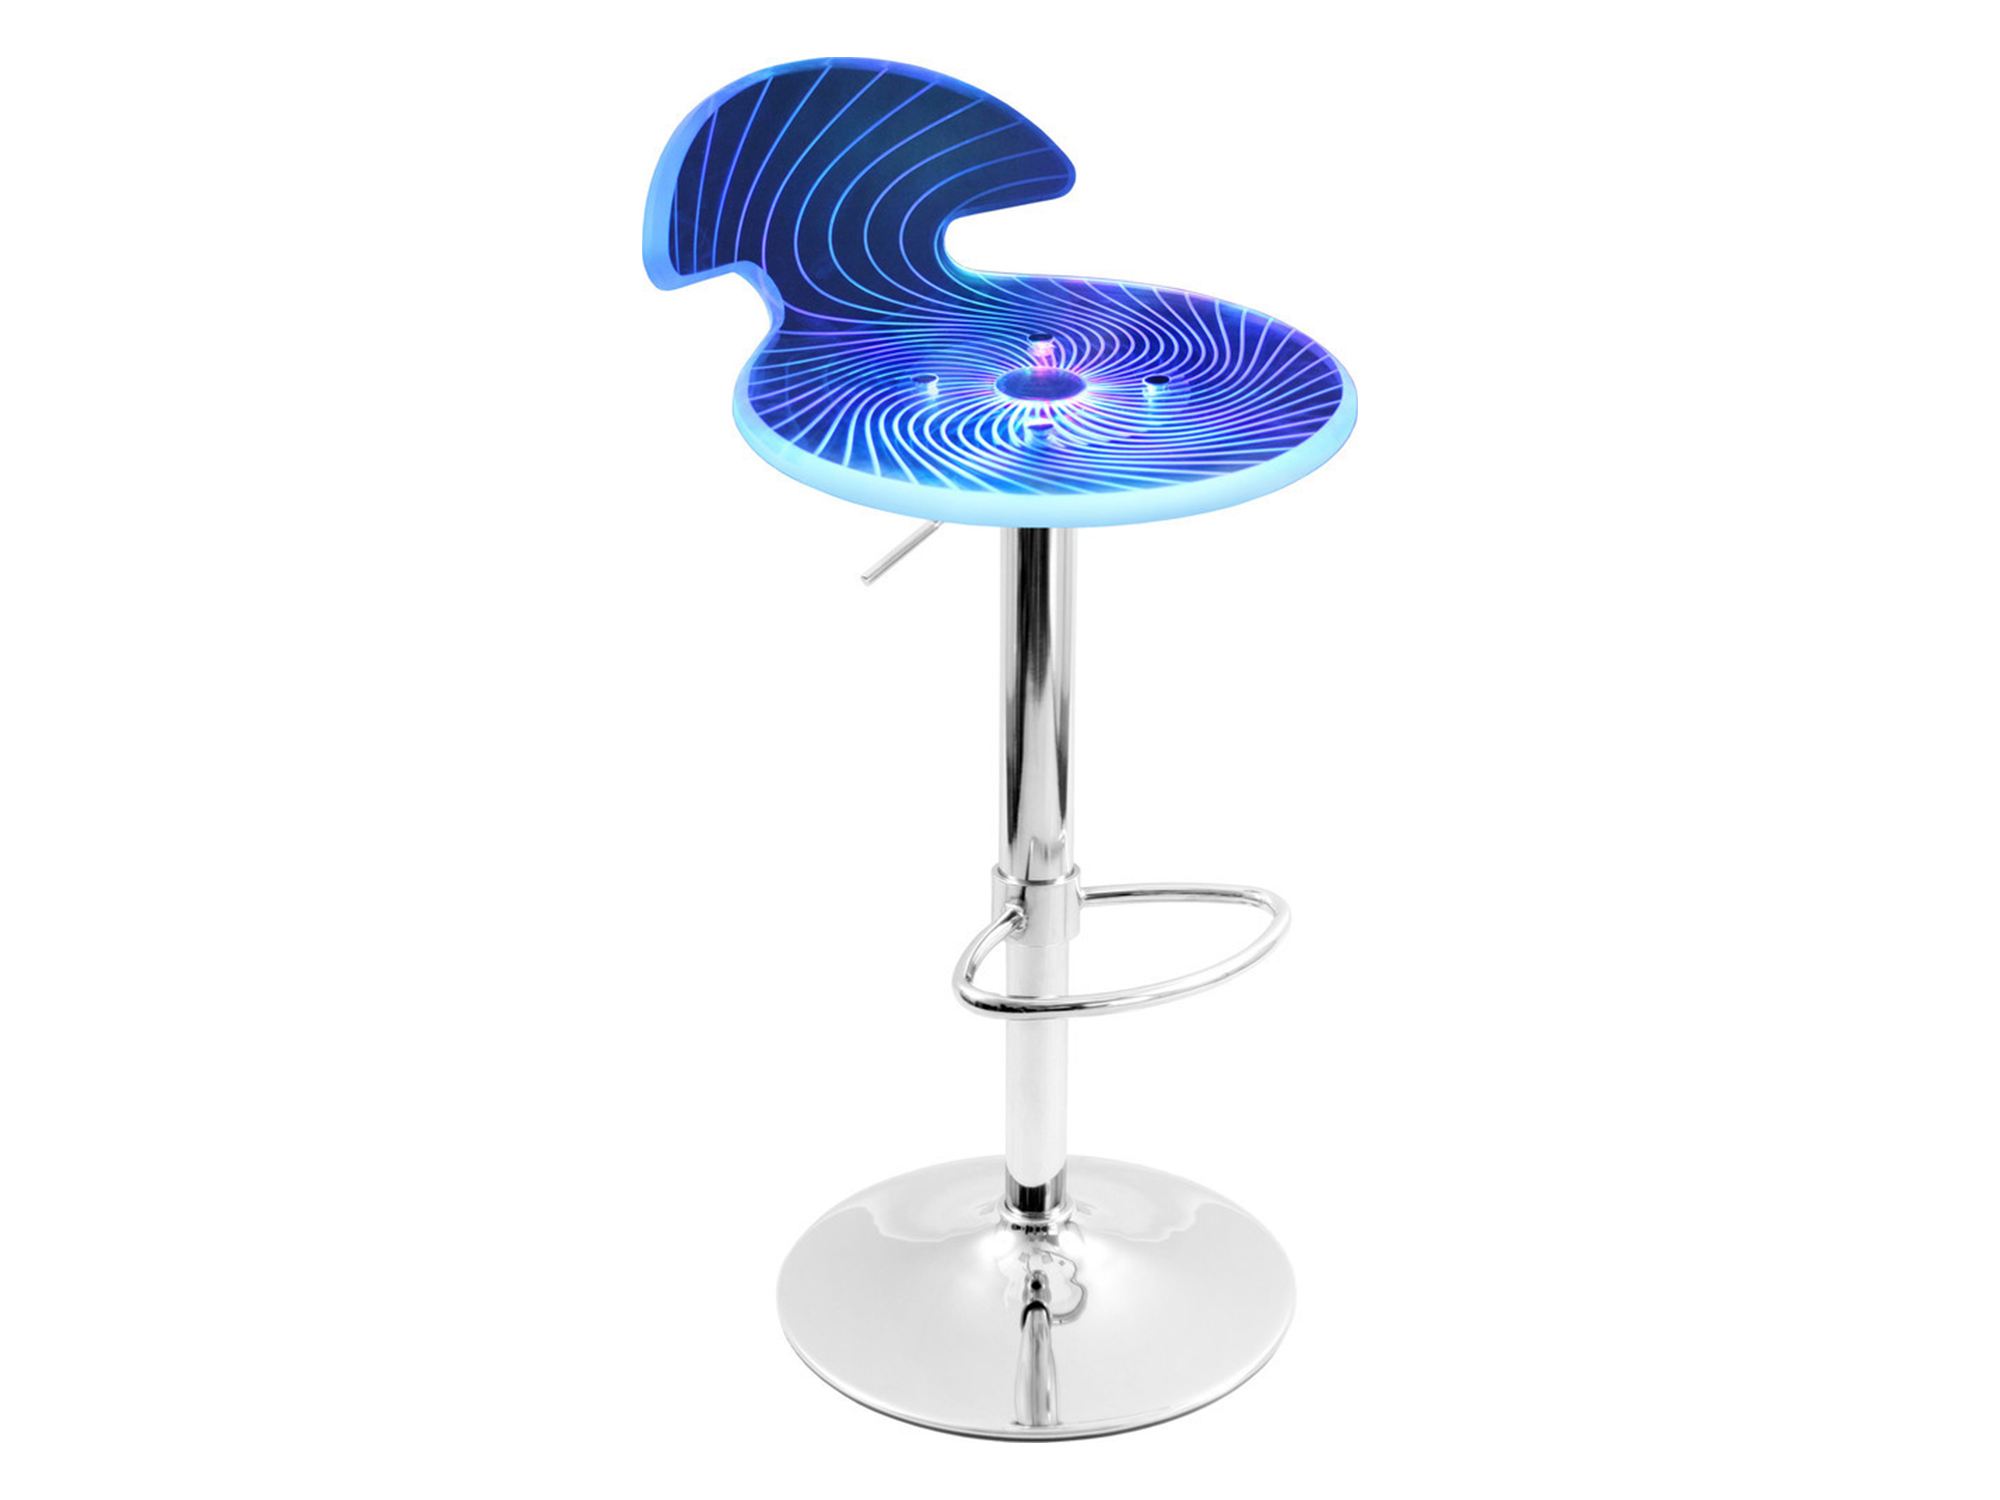 ILLUMINATED BARSTOOL